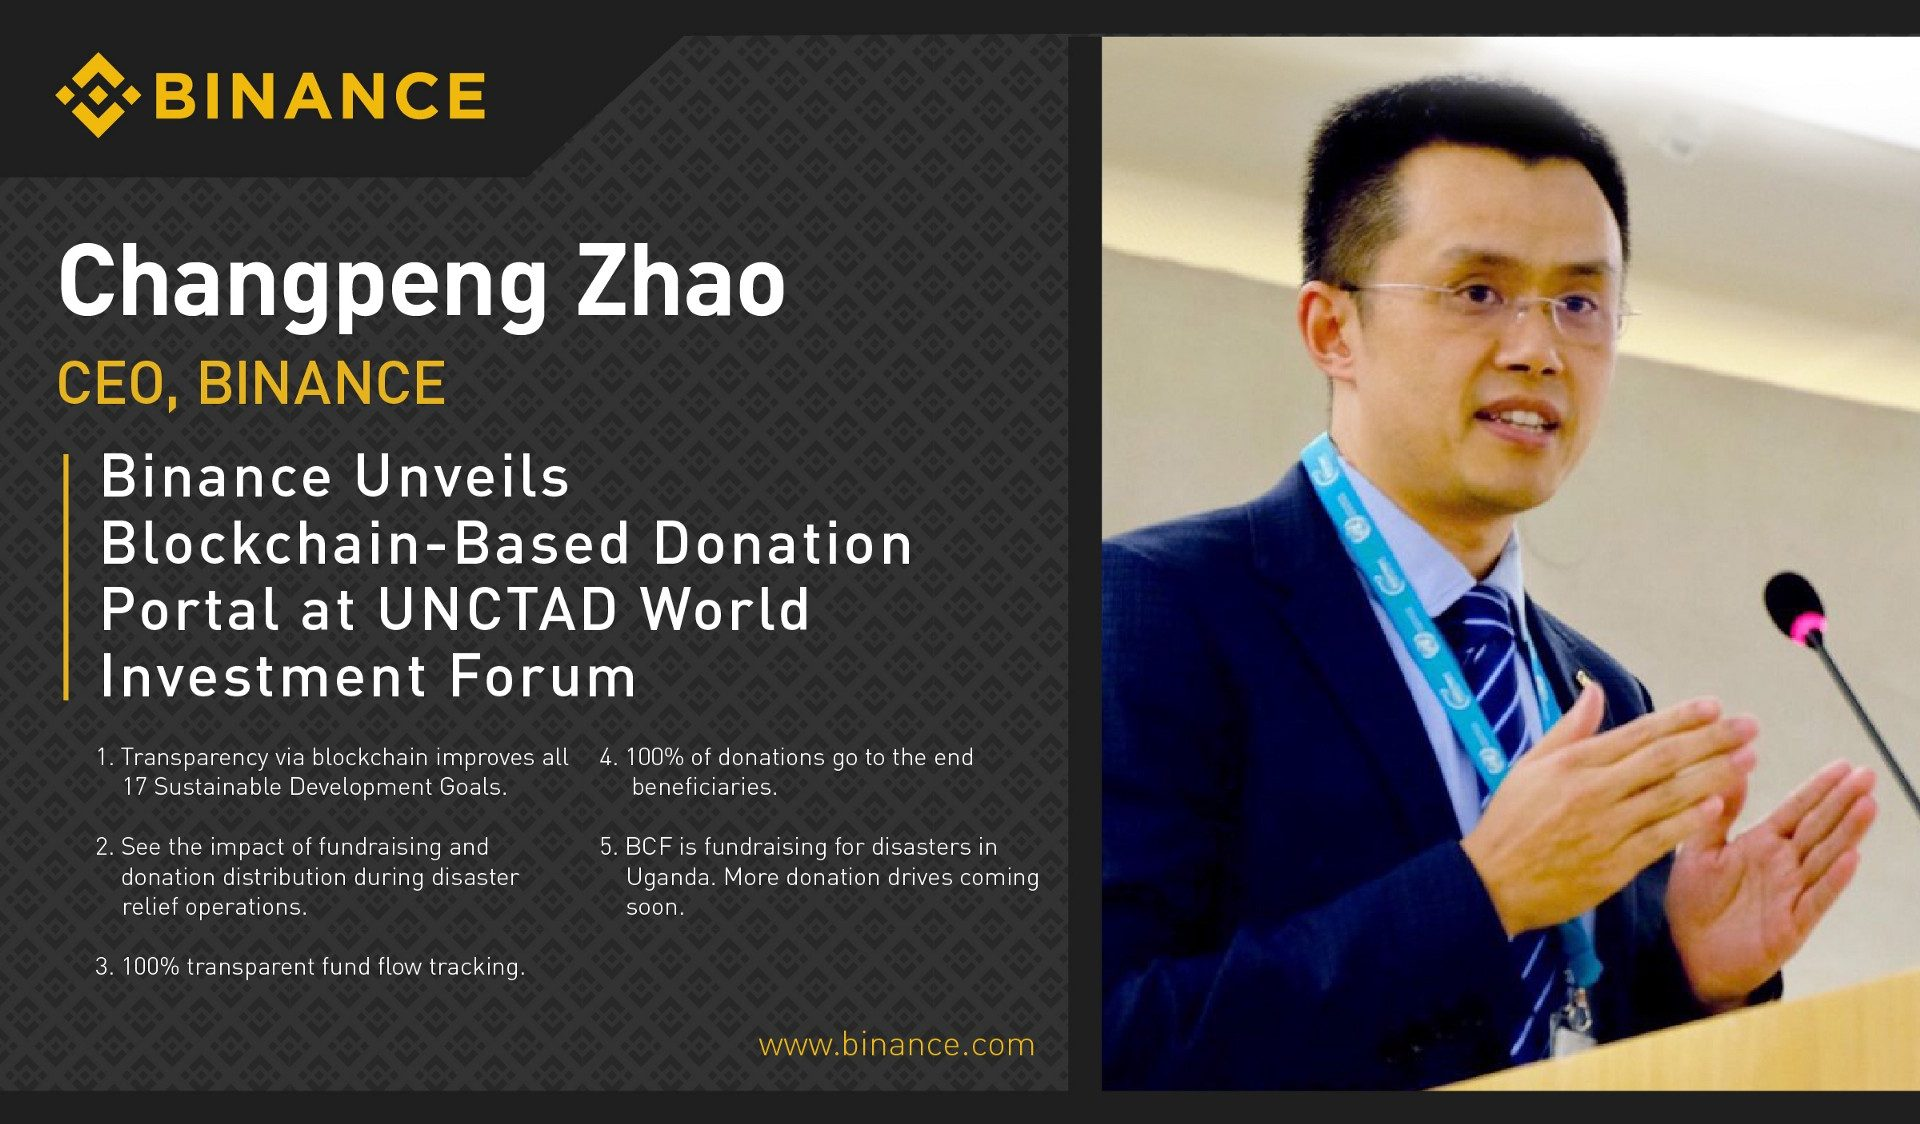 Binance Launches Blockchain Donation Portal At UNCTAD In Geneva